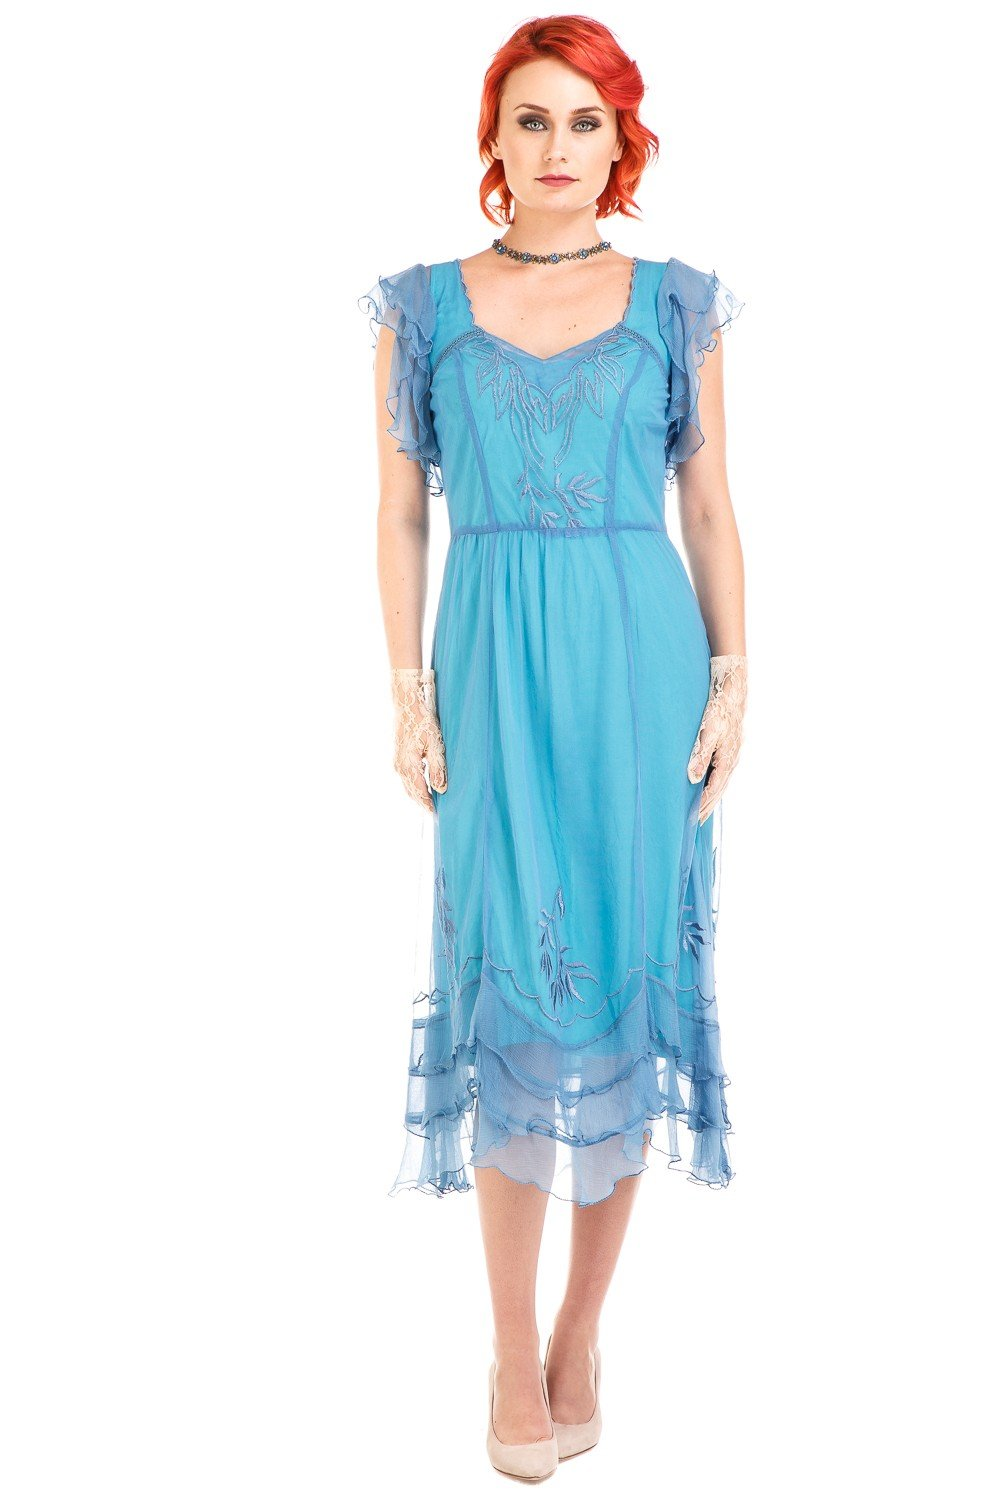 1920s Style Dresses, 20s Dresses Olivia 1920s Flapper Style Dress in Turquoise by Nataya $254.00 AT vintagedancer.com